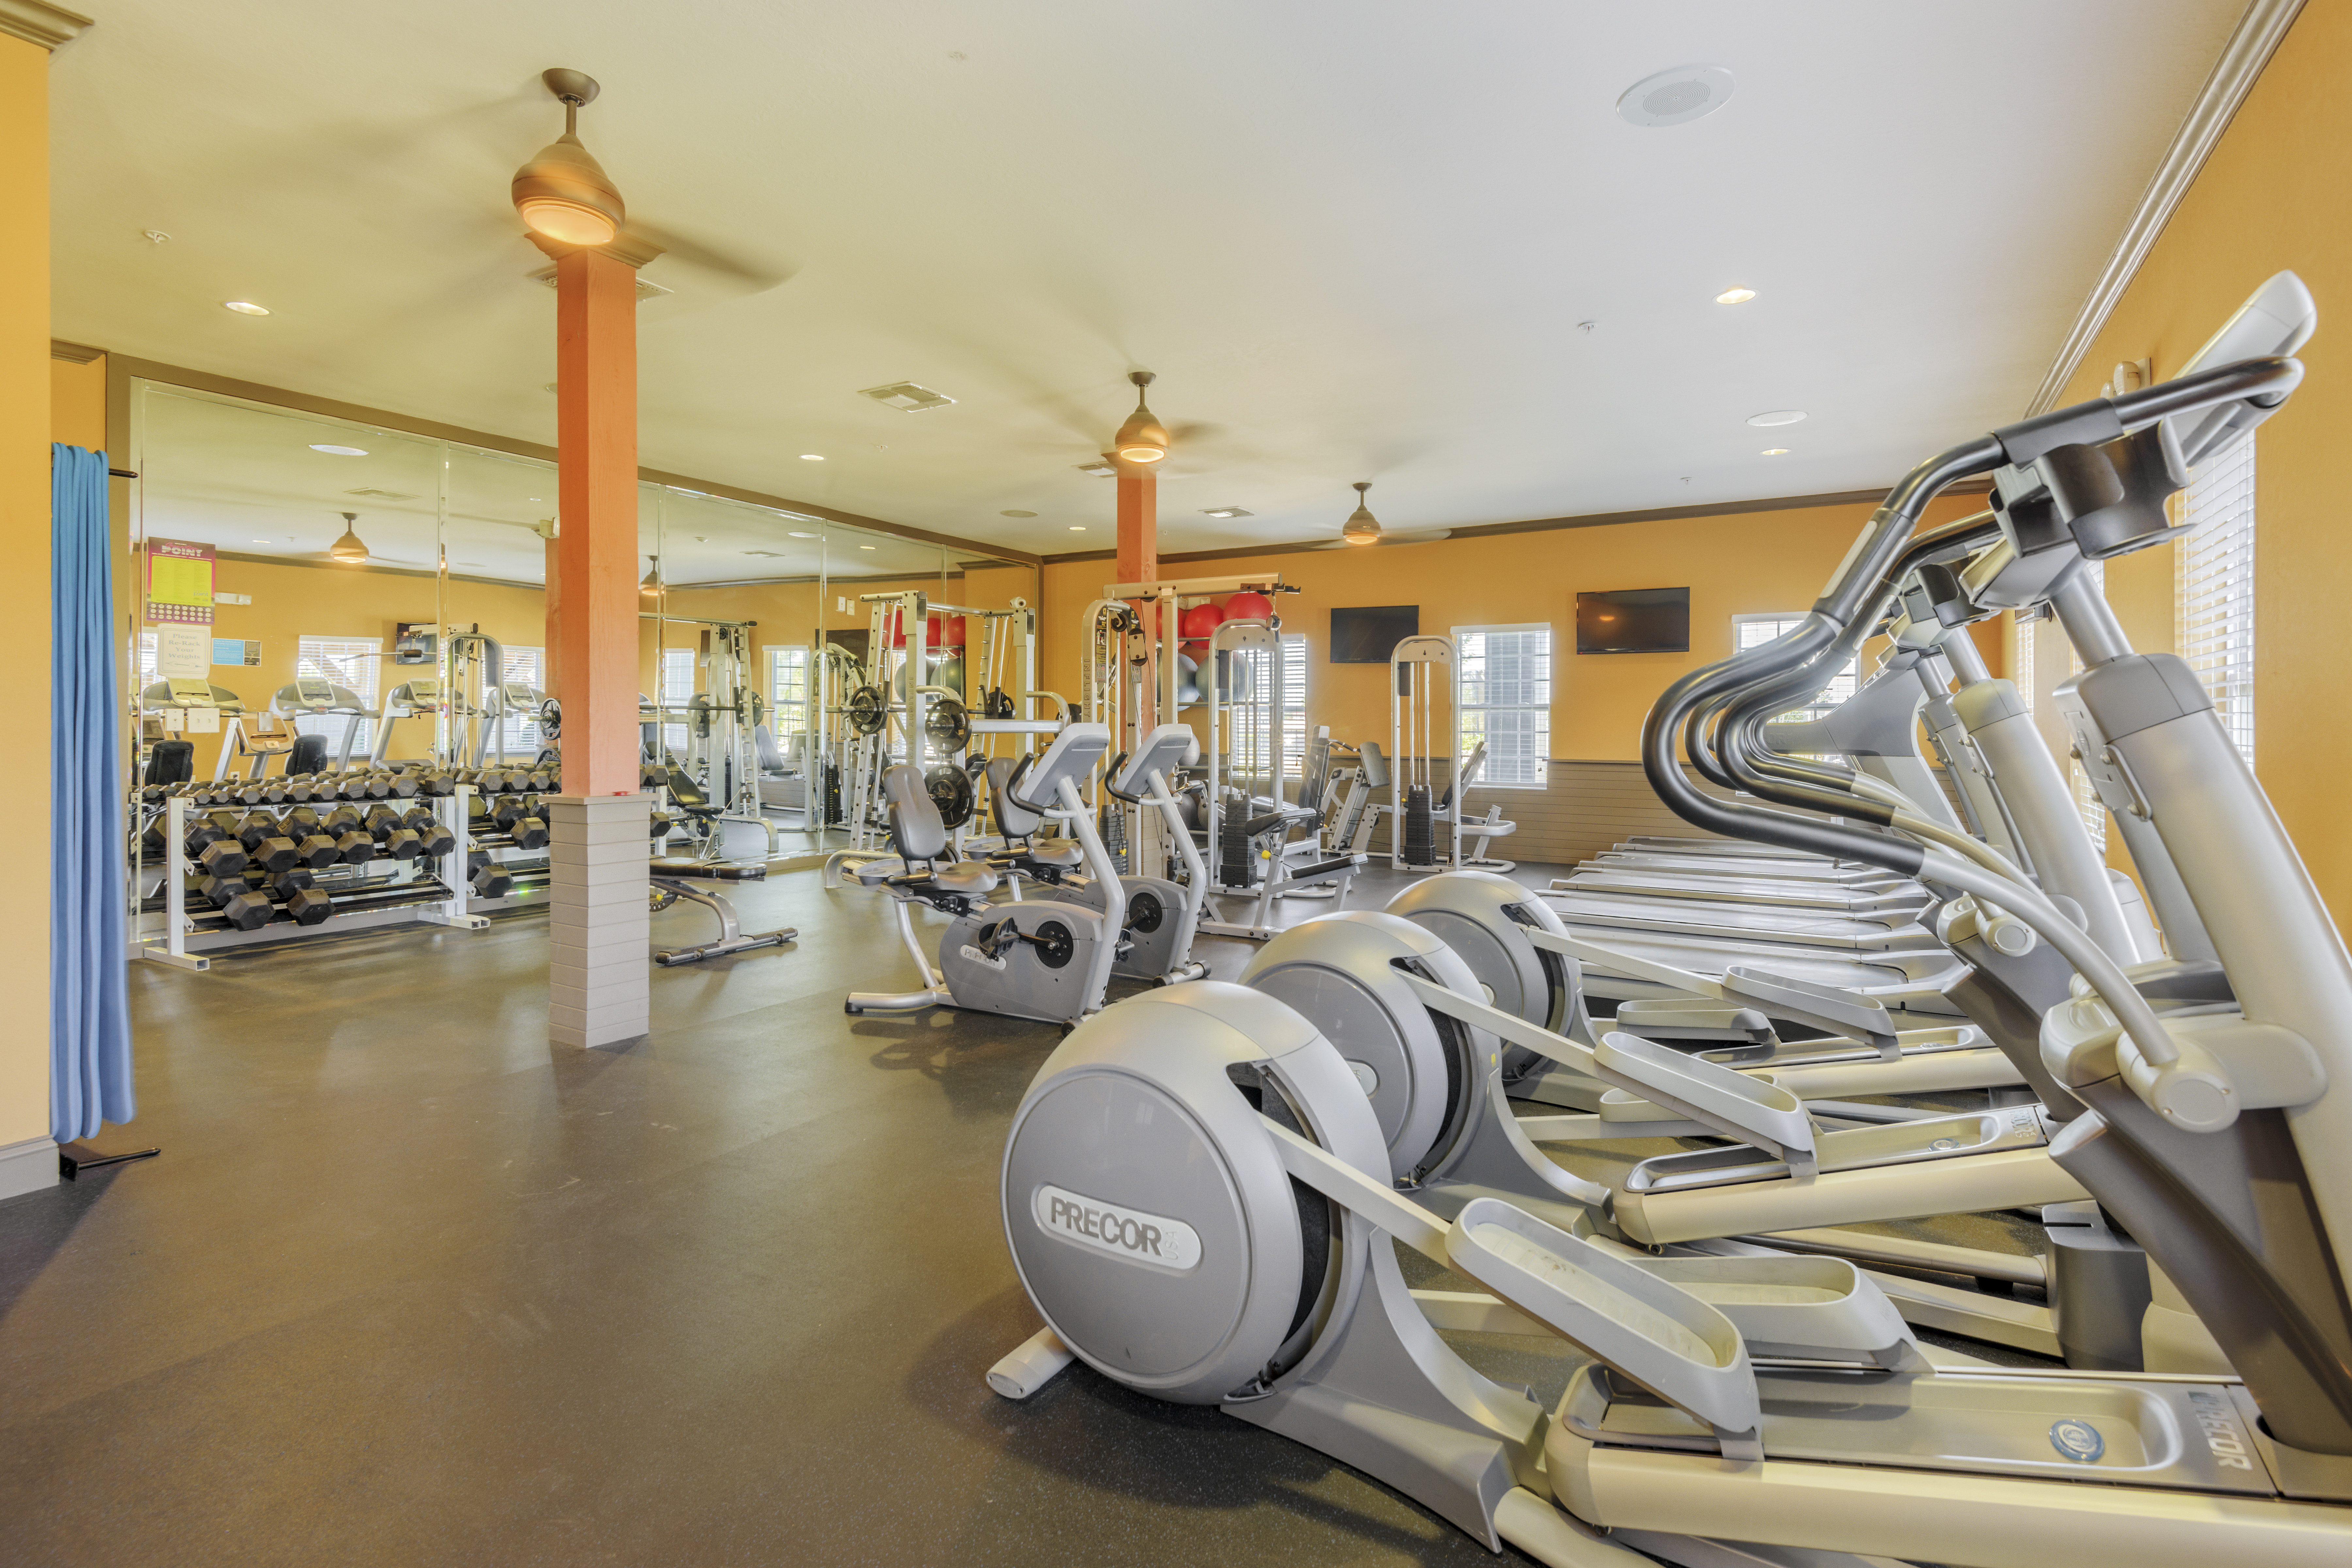 Murfreesboro Property Photos Gym Dco Commercial Floors